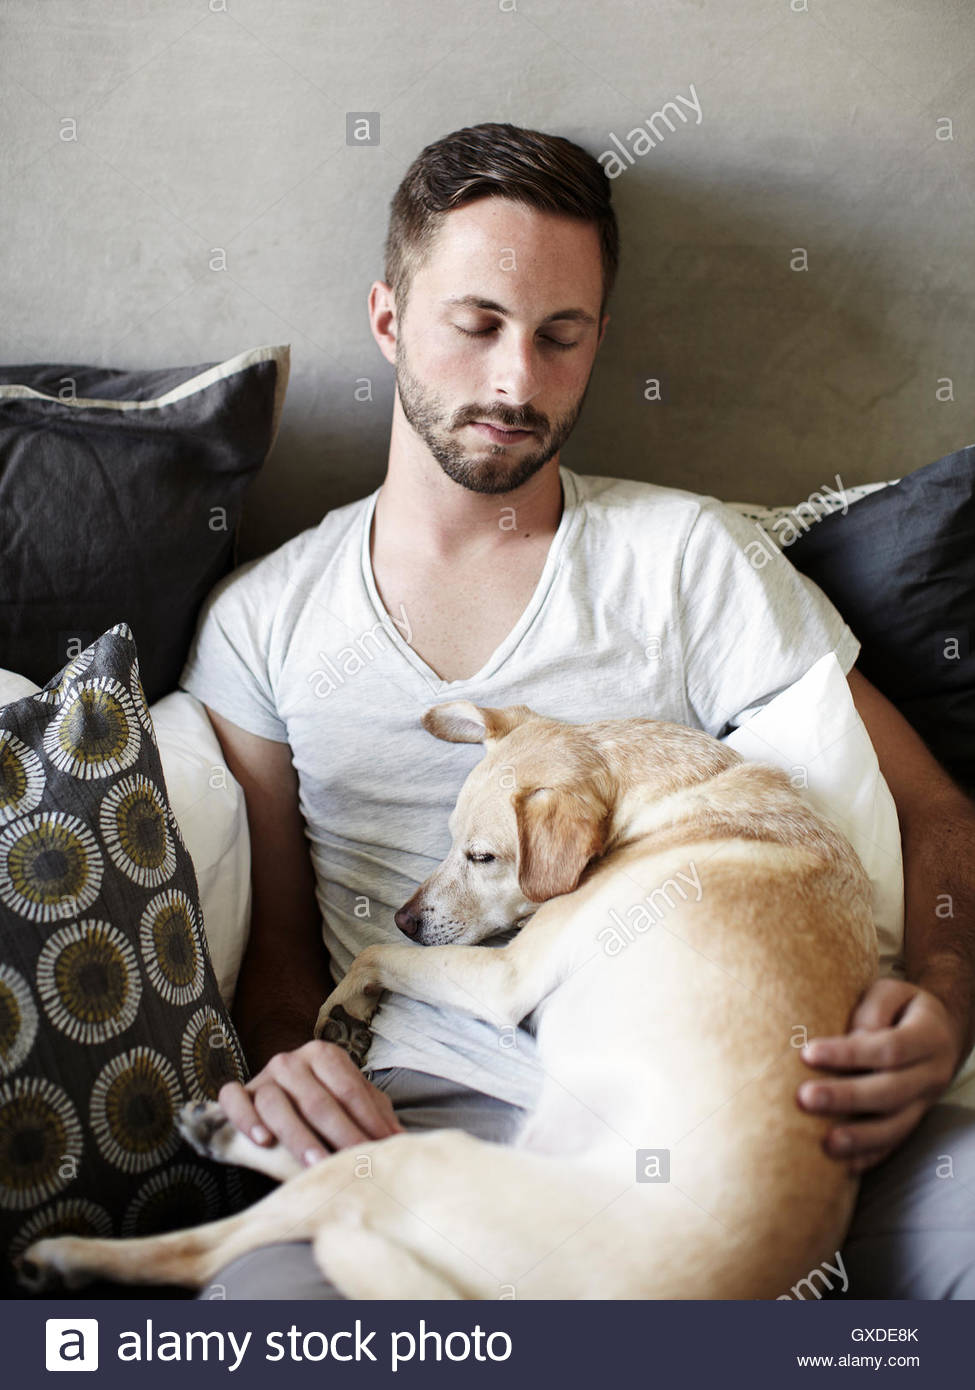 Young man and dog asleep on bed - Stock Image